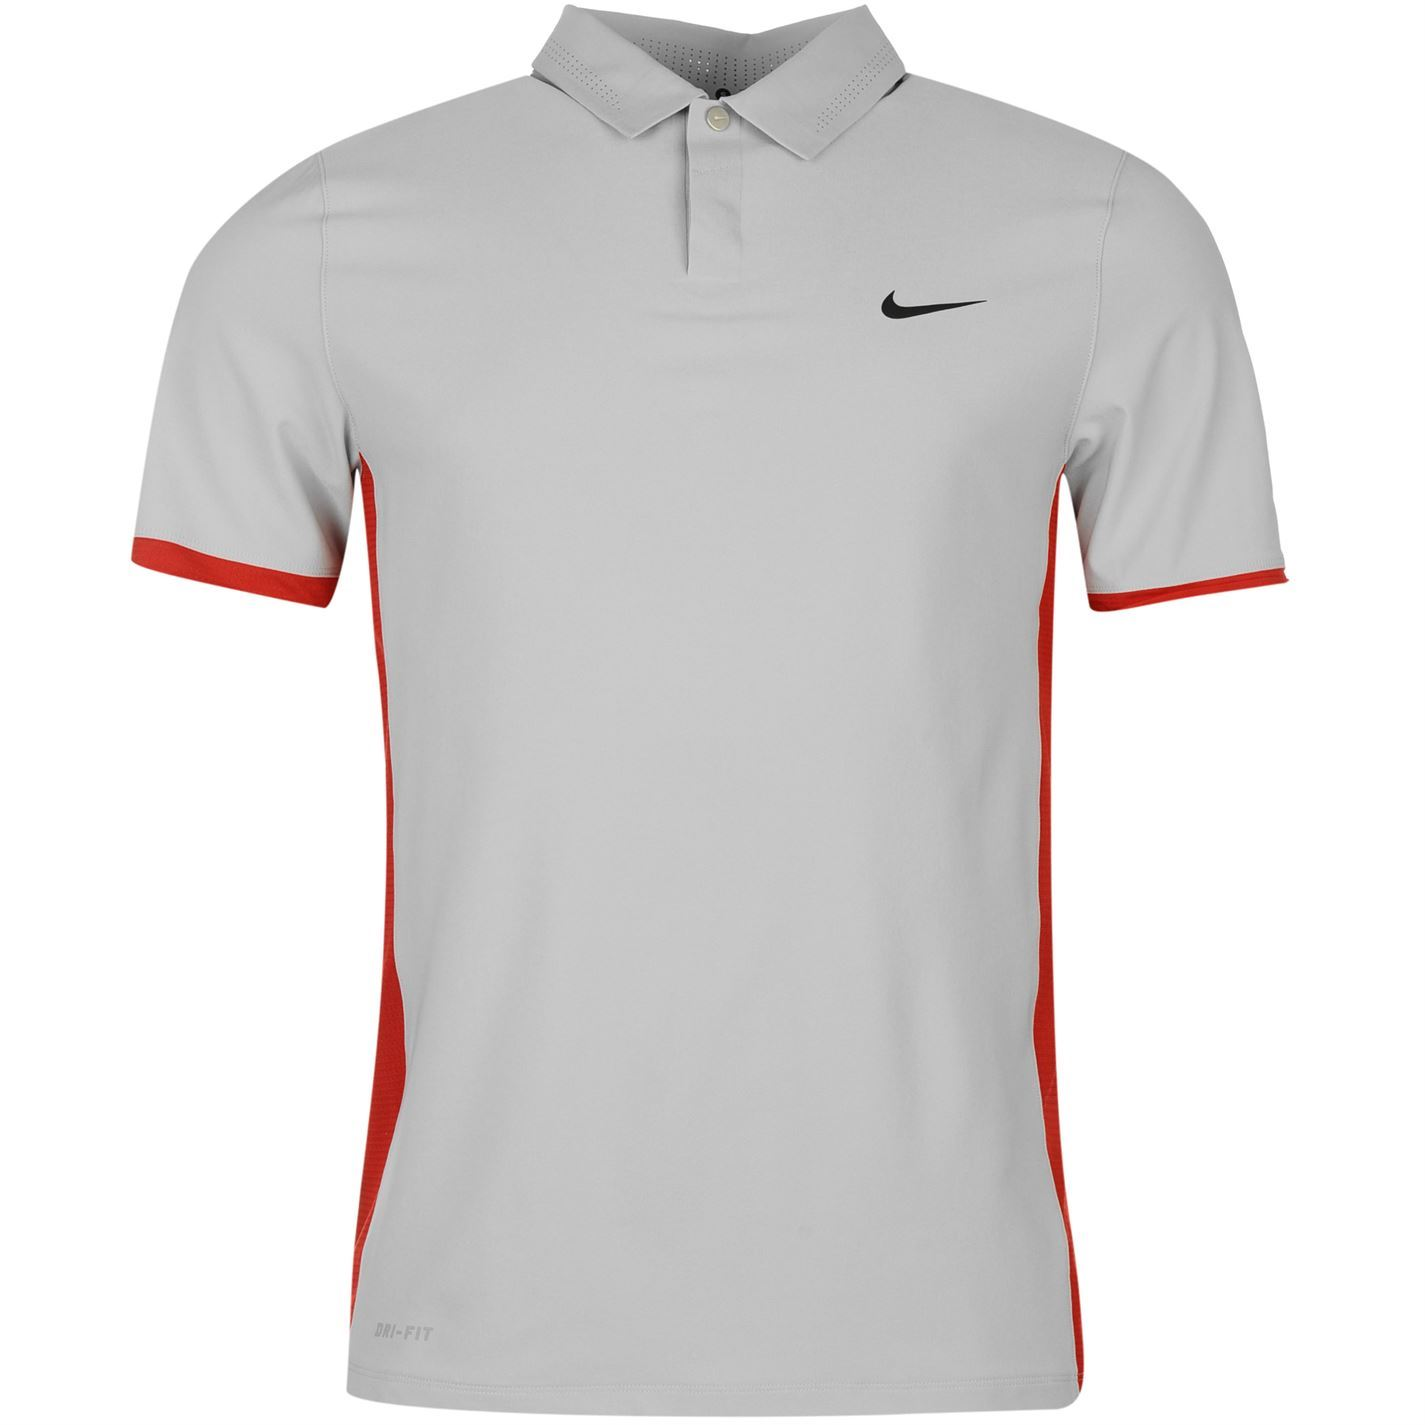 Nike tiger woods elite golf polo shirt mens grey red top t for Big tall nike golf shirts